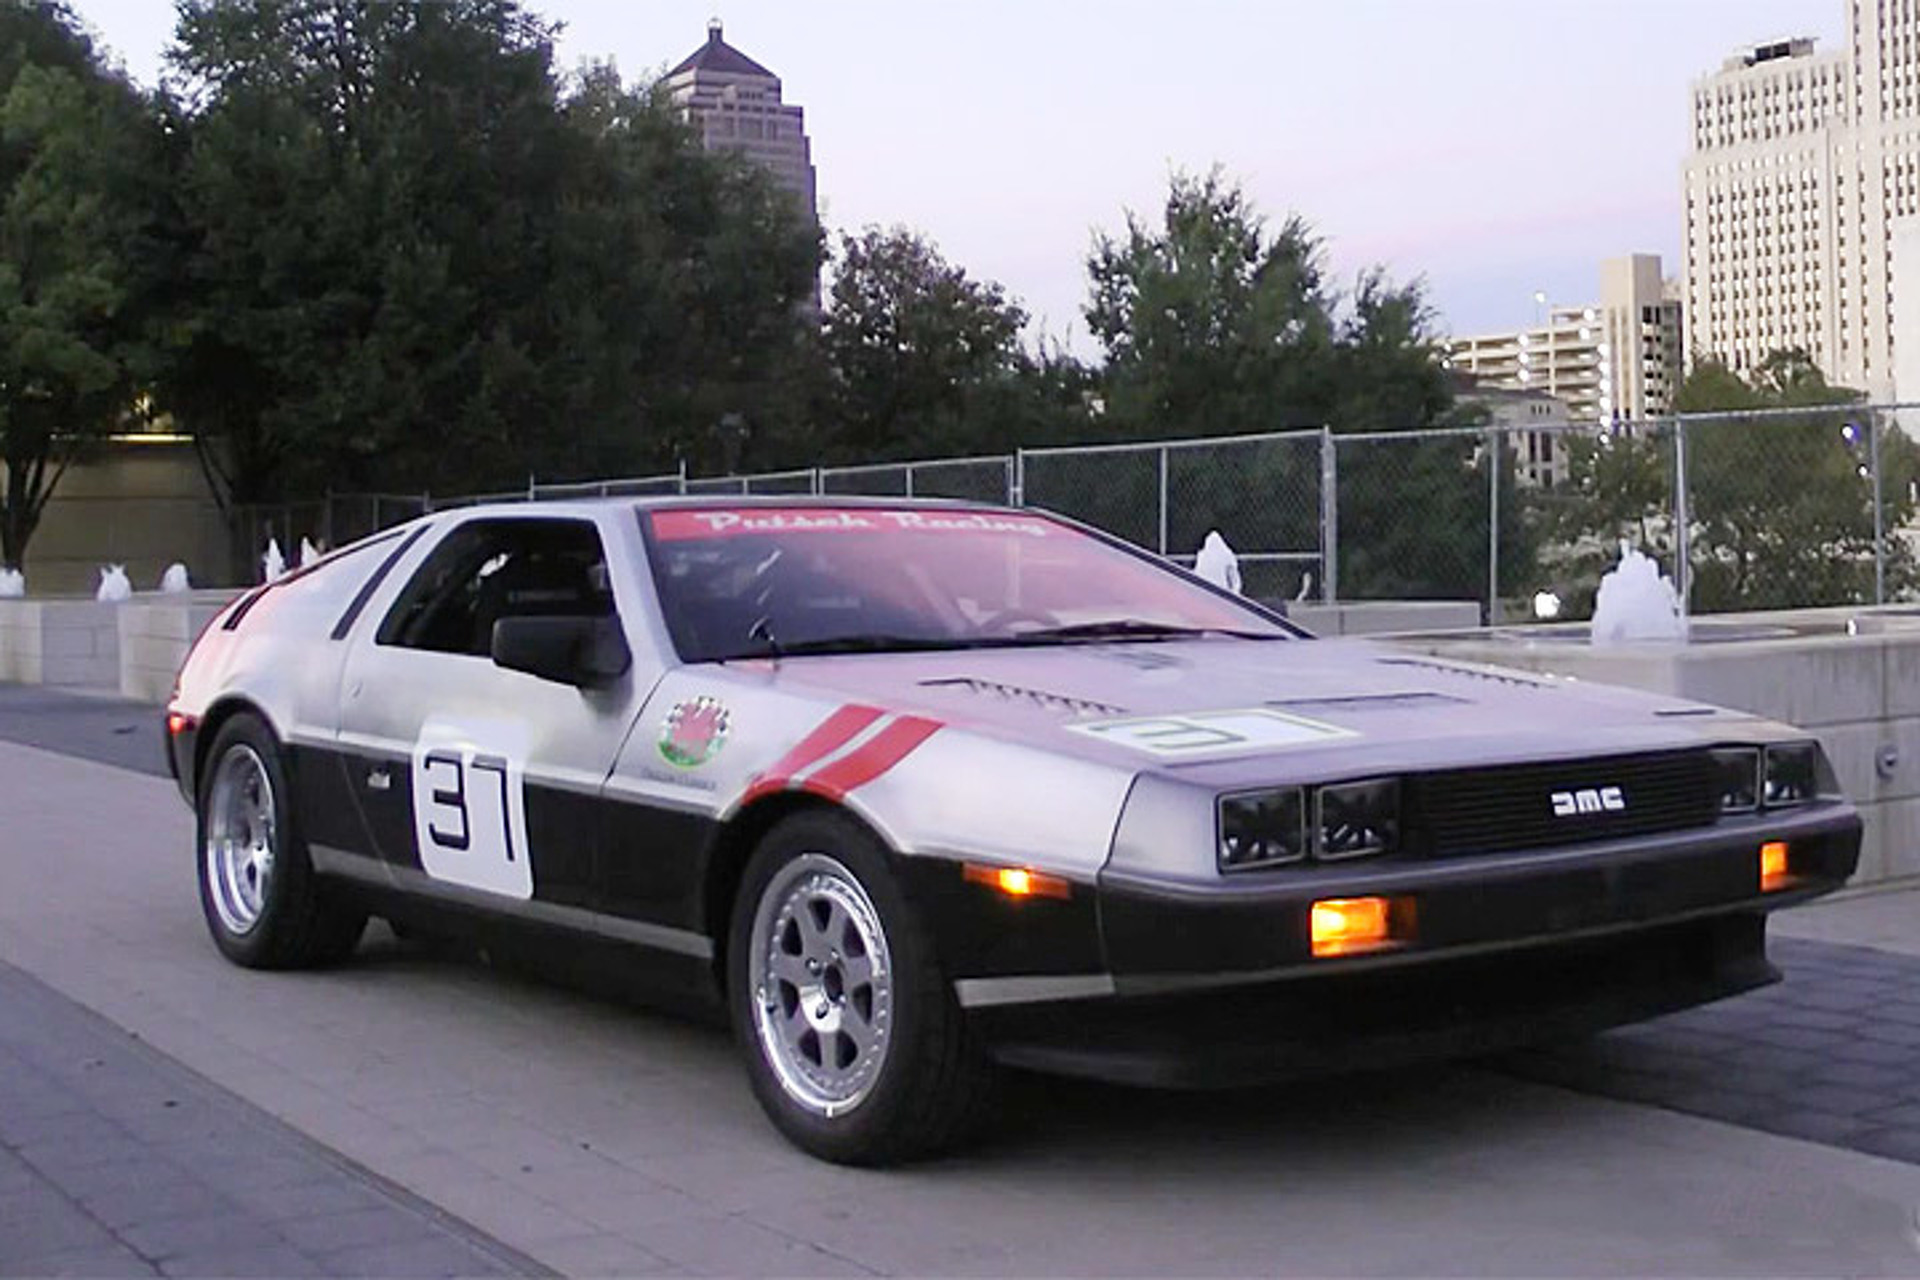 Watch This Racy DeLorean DMC-12 Spit Flames 1 of 1 | Motor1